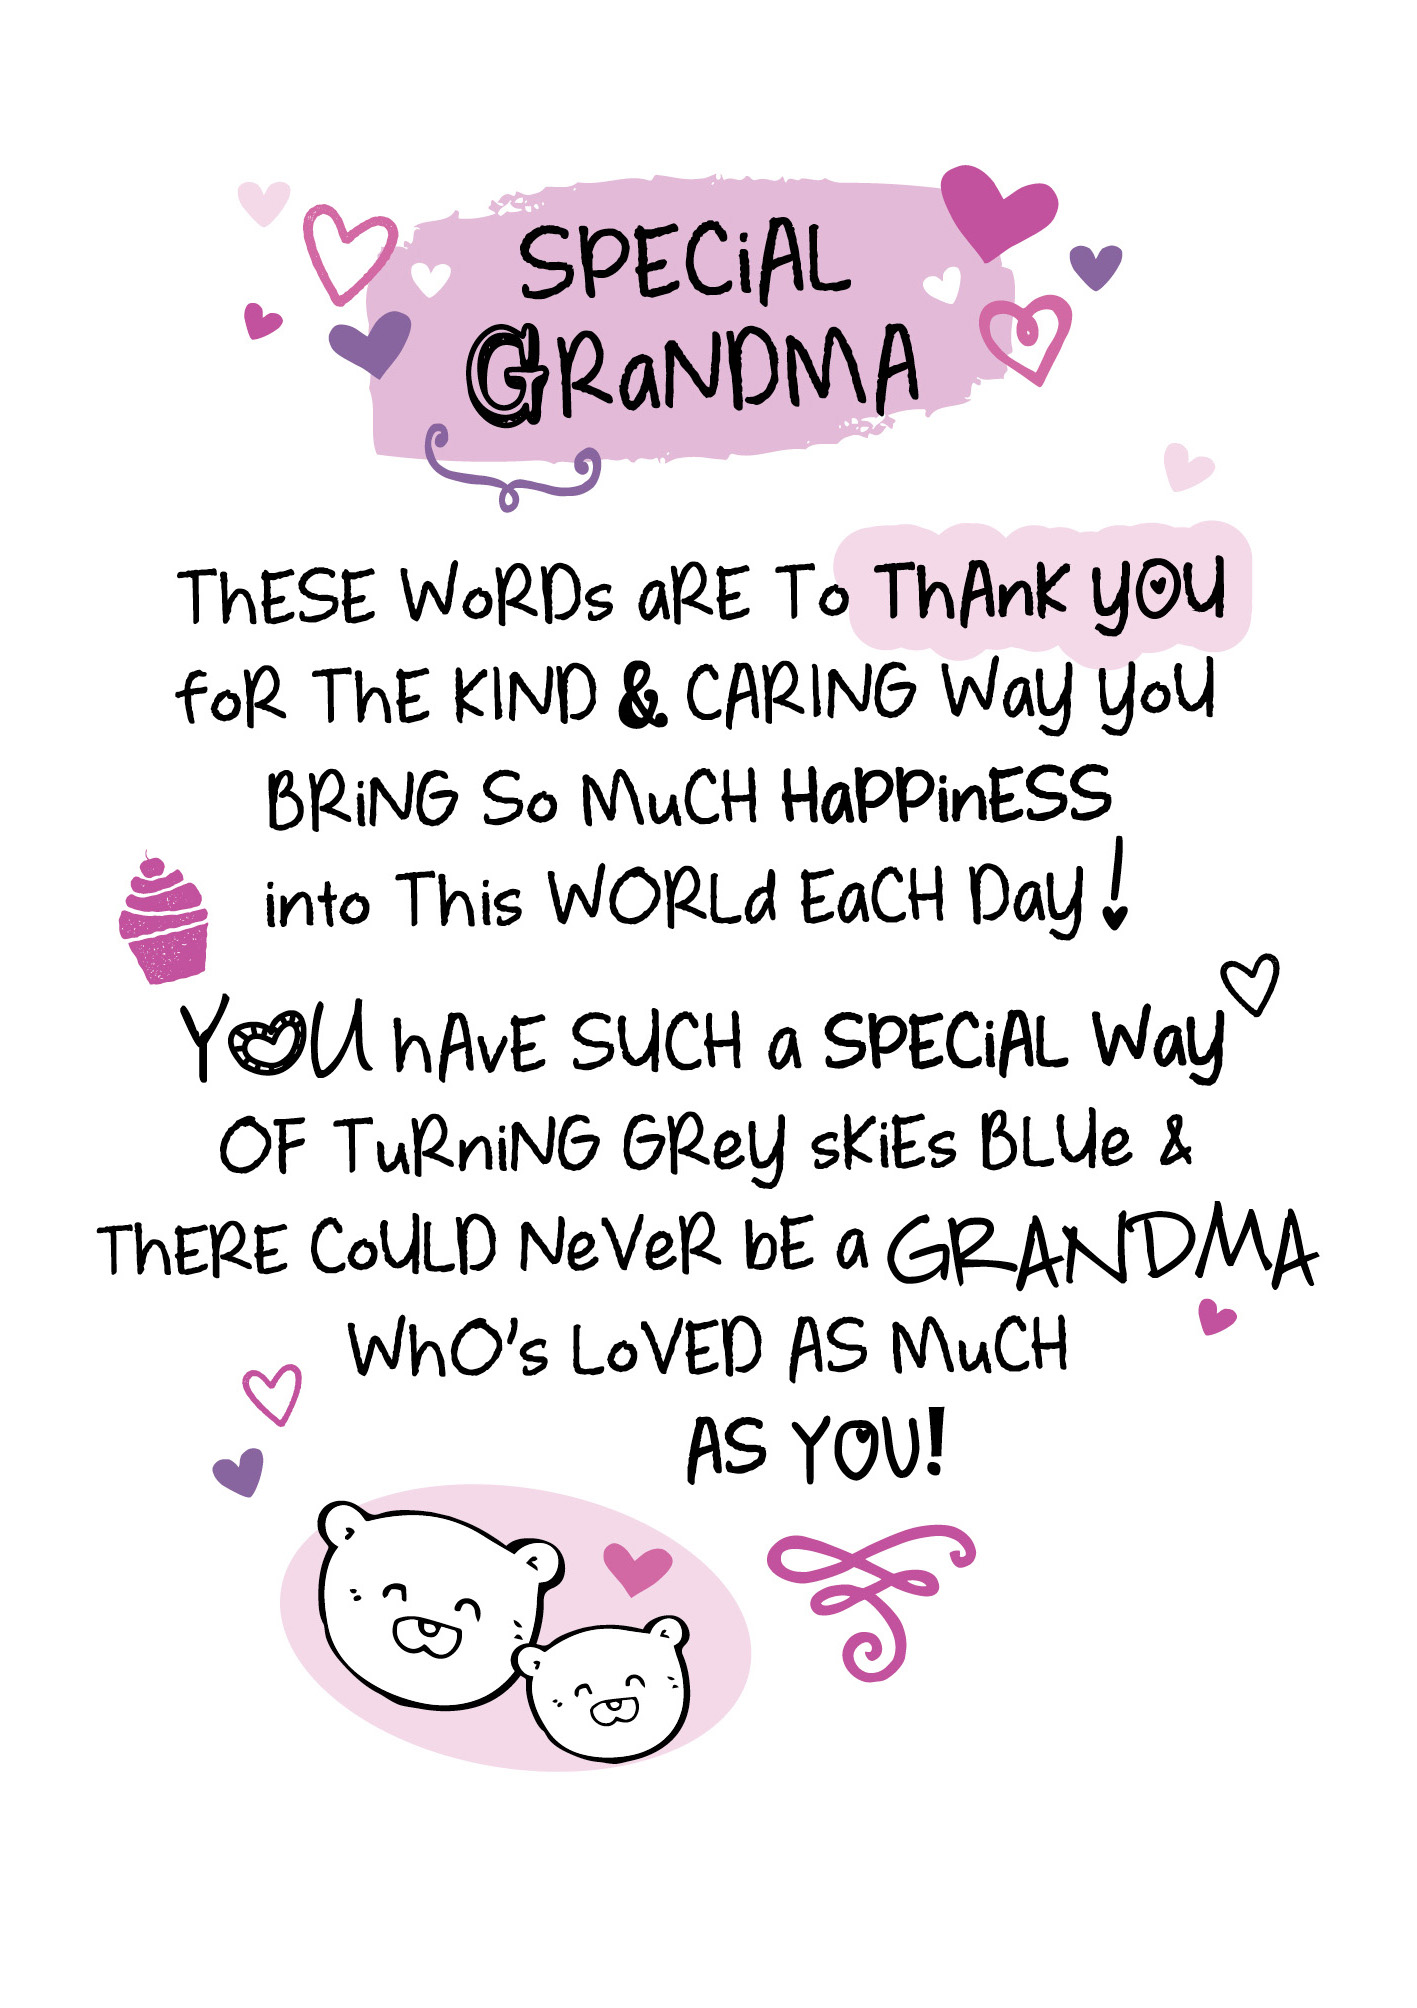 Special Grandma Inspired Words Greeting Card Blank Inside